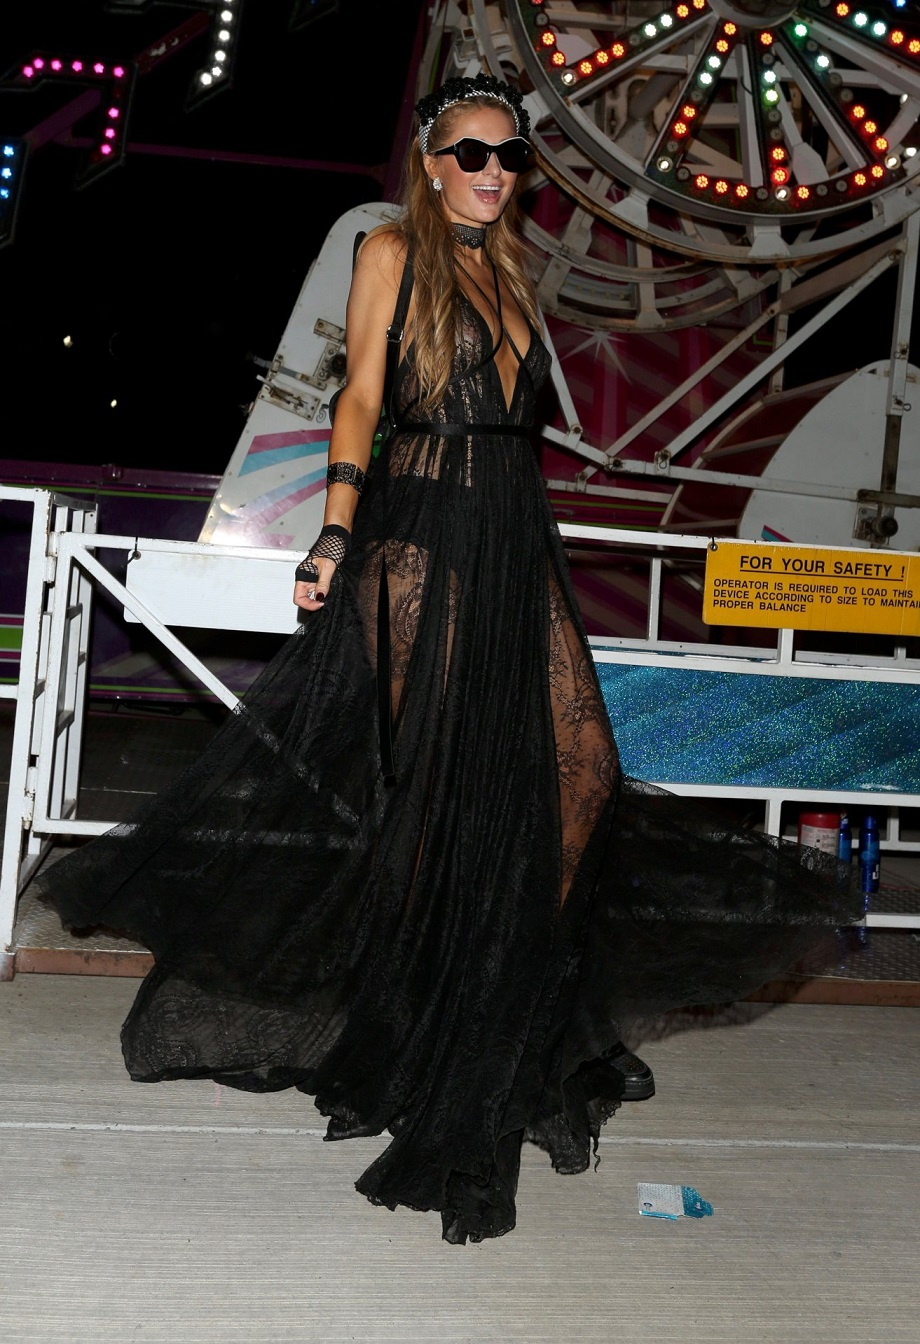 Hilton goes bra-less in sheer lacy black dress attending Neon Carnival at Coachella